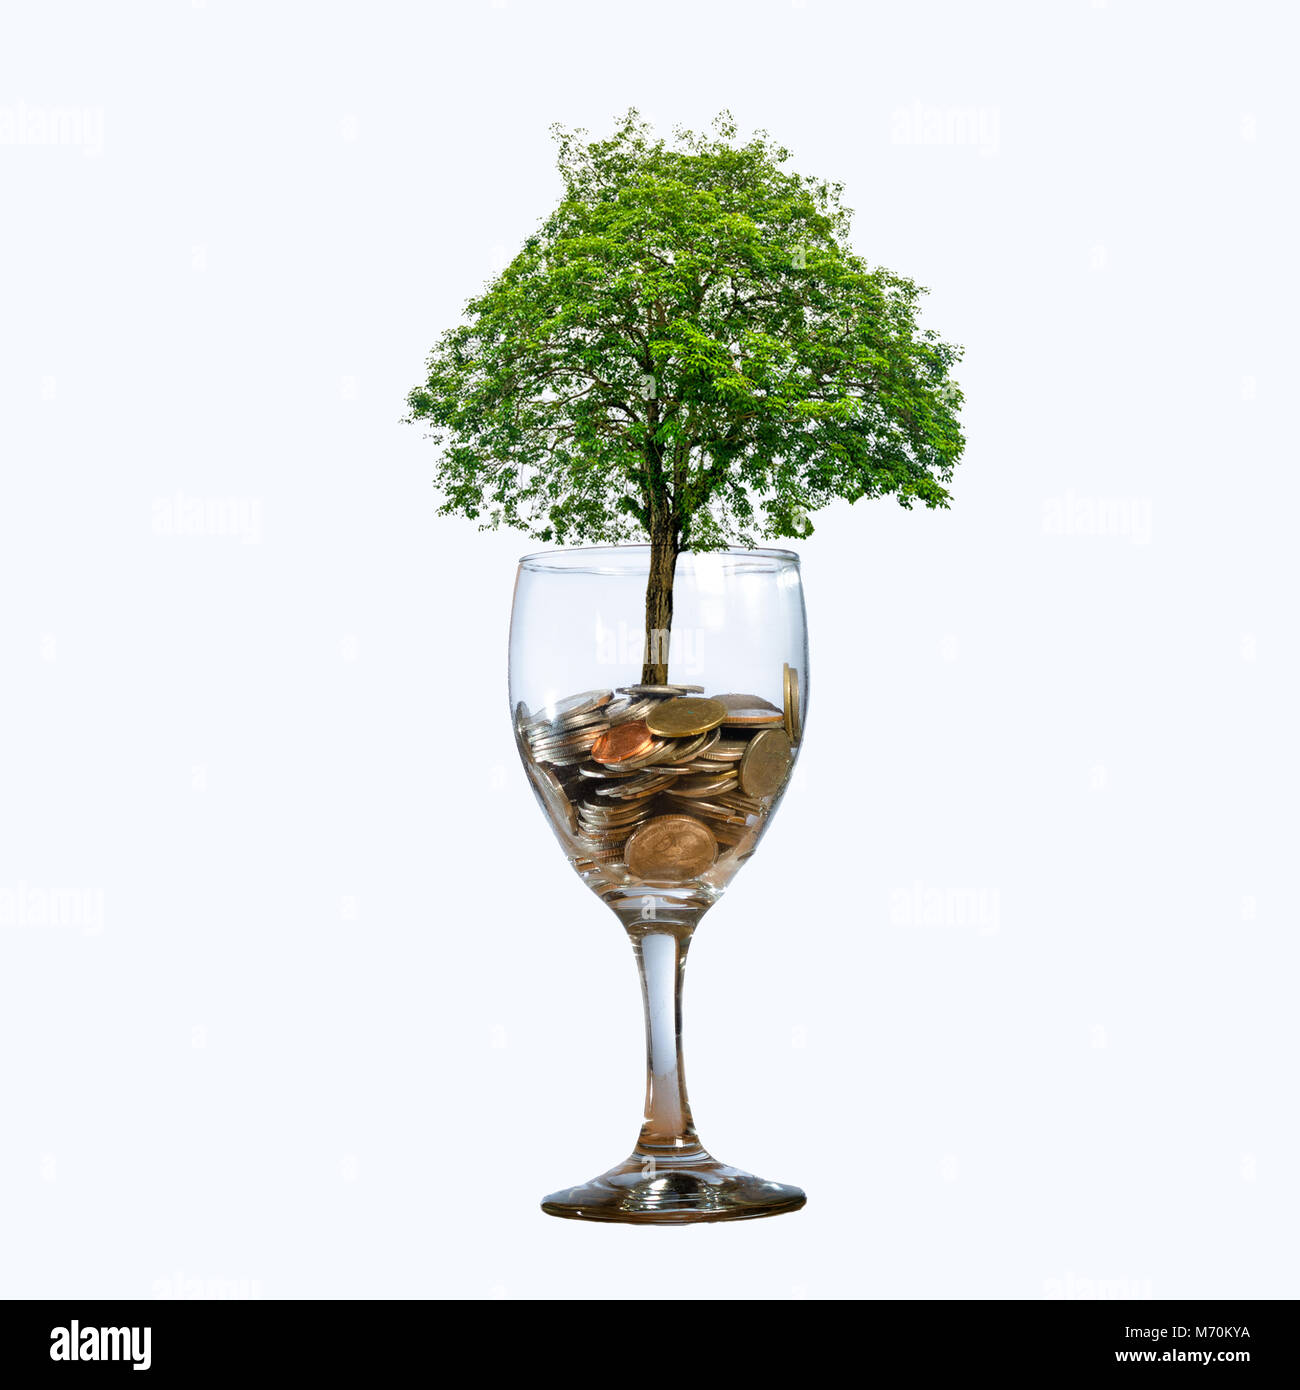 tree Coin glass Isolate hand Coin tree The tree grows on the pile. Saving money for the future. Investment Ideas - Stock Image